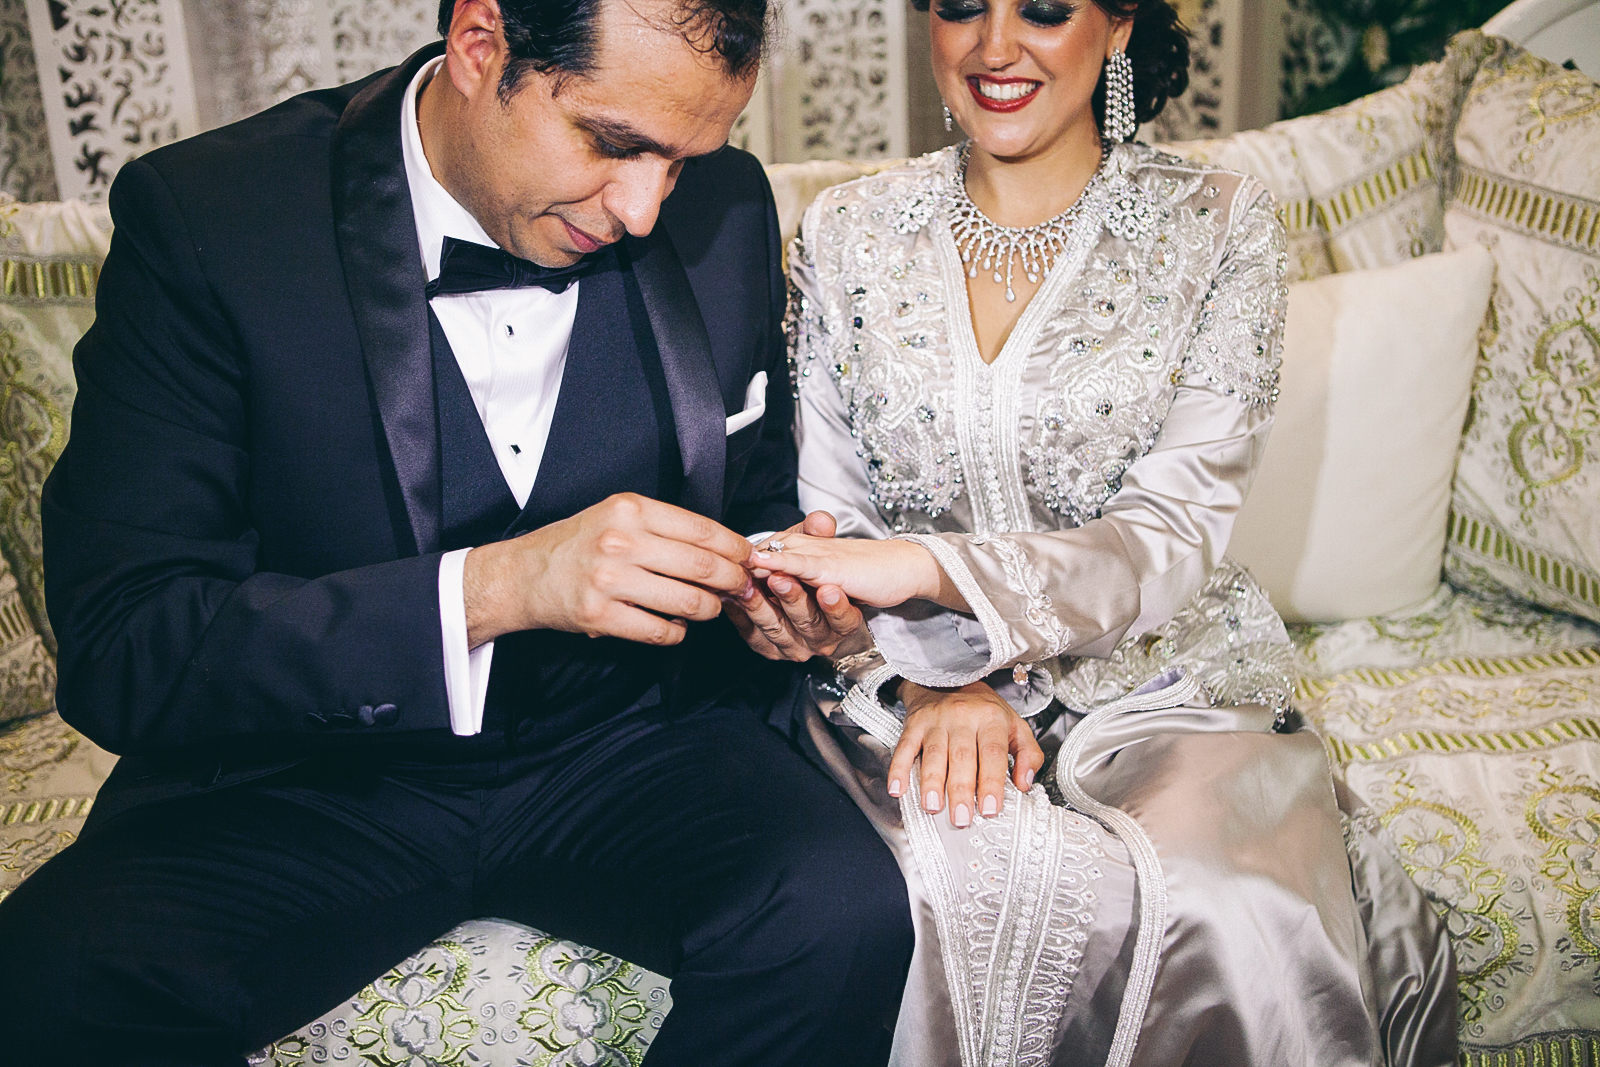 traditional_moroccan_wedding_photographry_casablanca_morocco_houda_vivek_ebony_siovhan_bokeh_photography_090.jpg